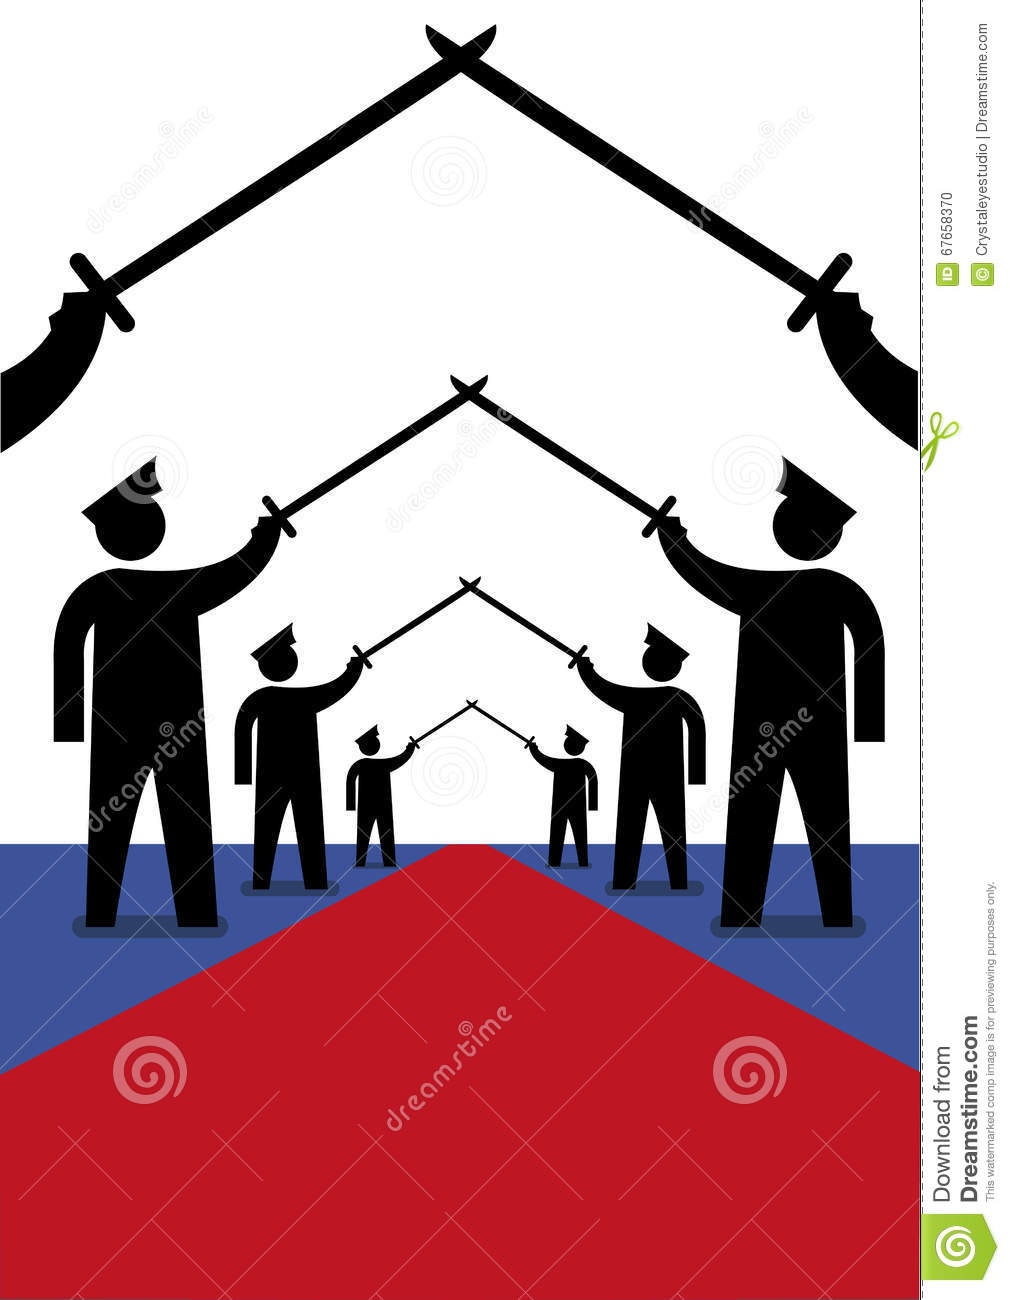 Military officers in a Saber Arch position for welcoming march. Editorial Clip Art.